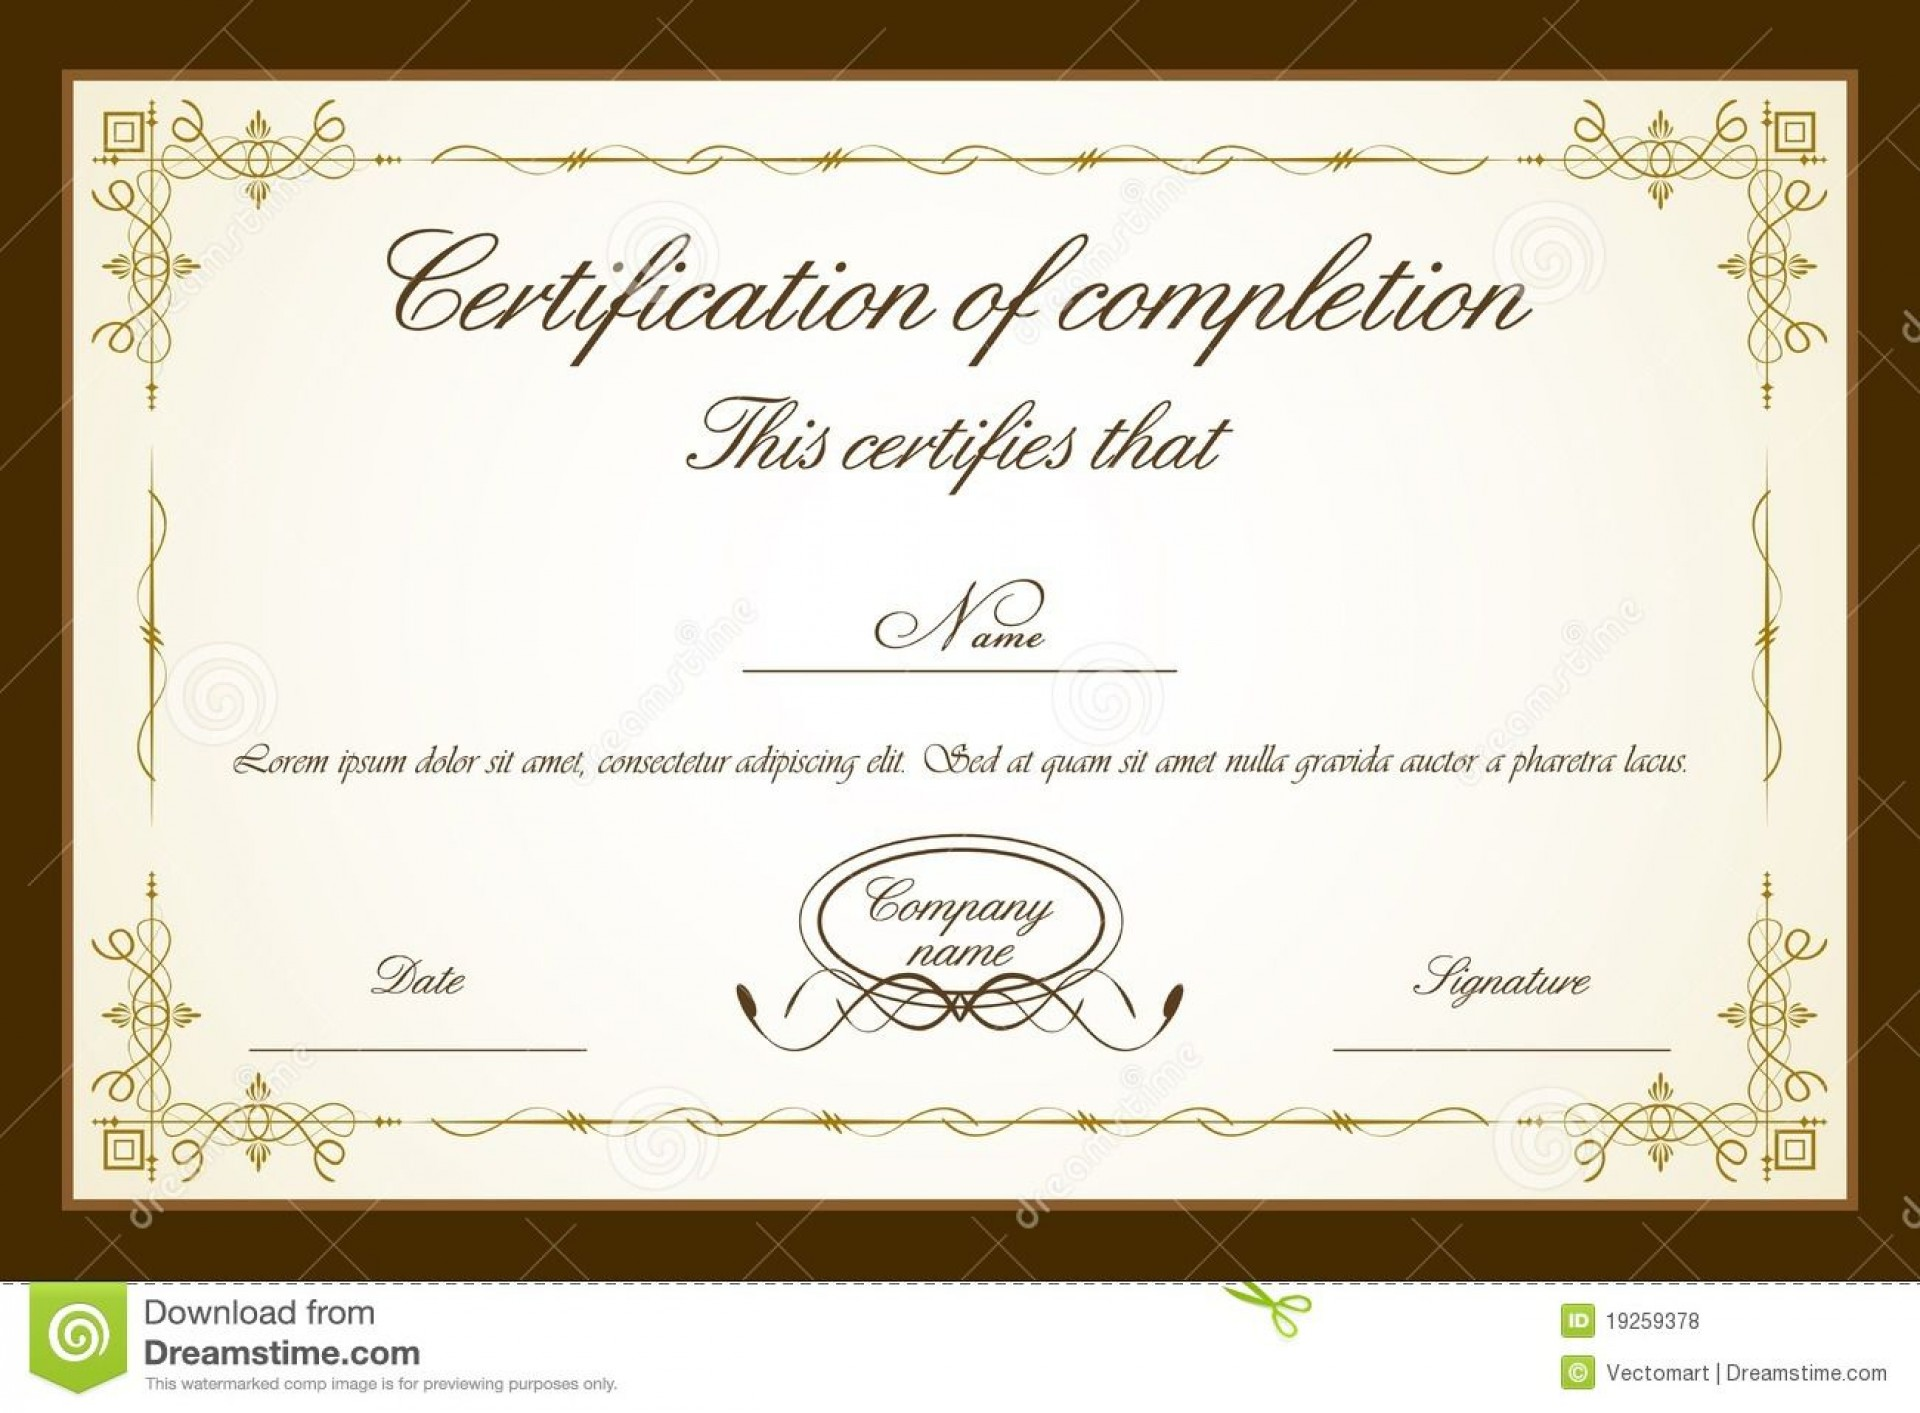 007 Impressive Free Printable Certificate Template High Resolution  Templates Blank Downloadable Participation1920